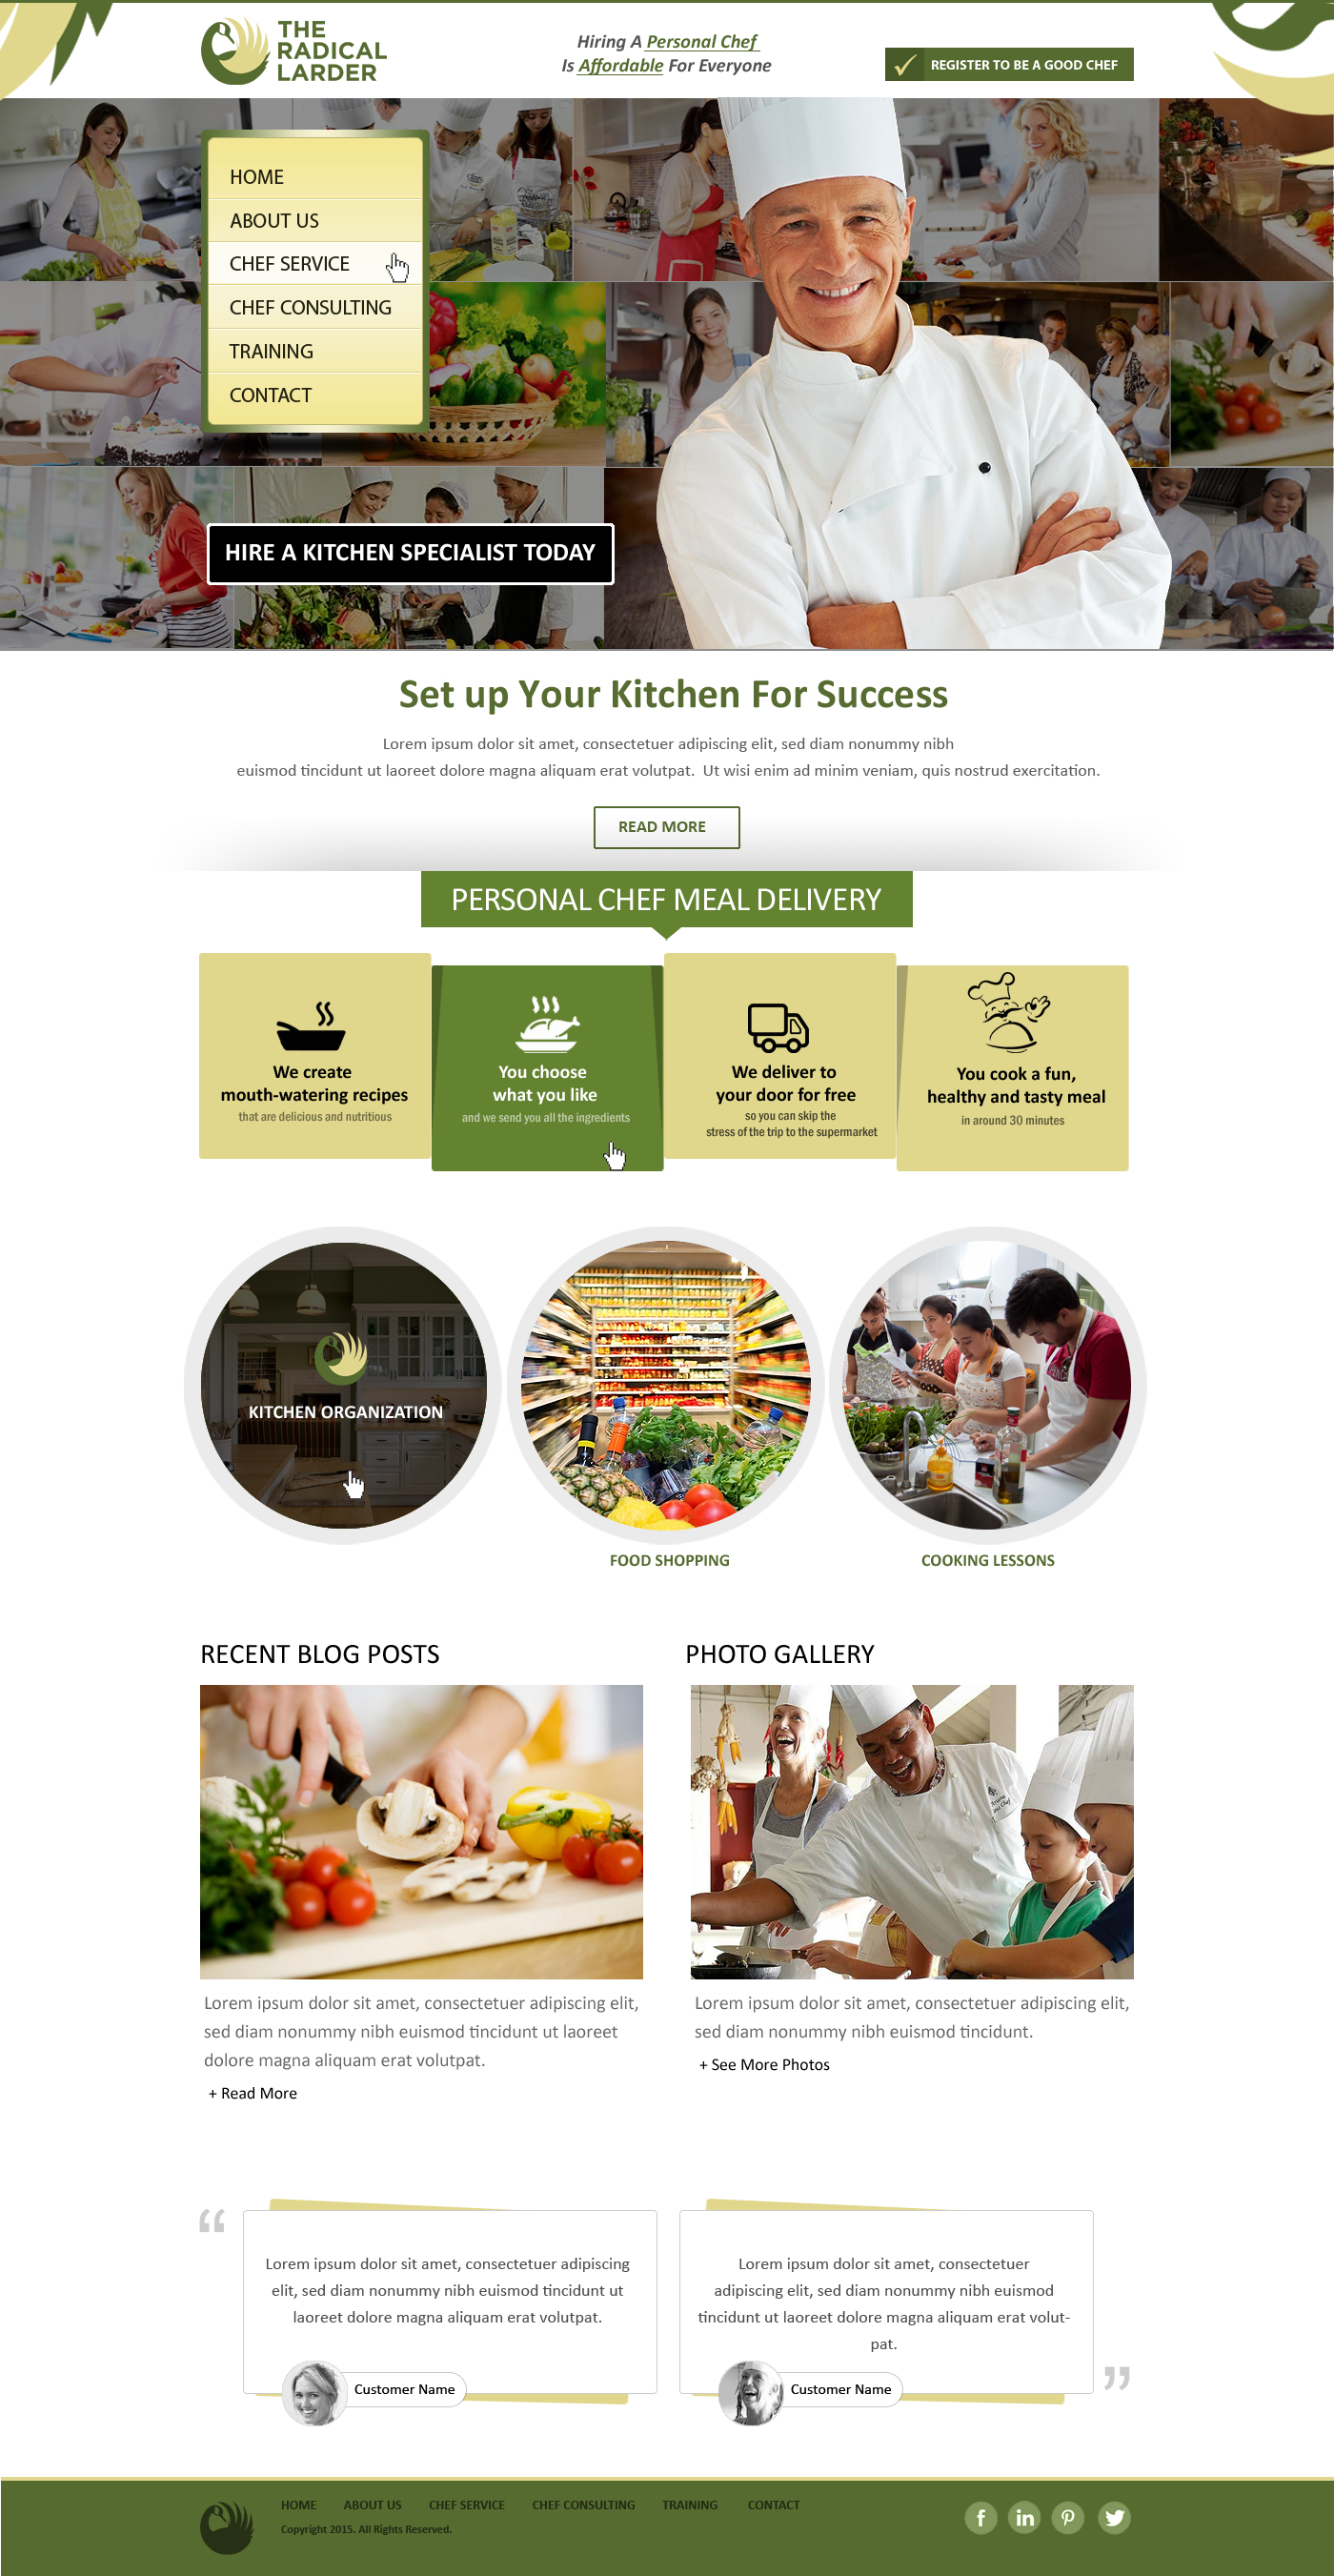 Web Page Design by webexprtz - Entry No. 104 in the Web Page Design Contest The Radical Larder Web Page Design.